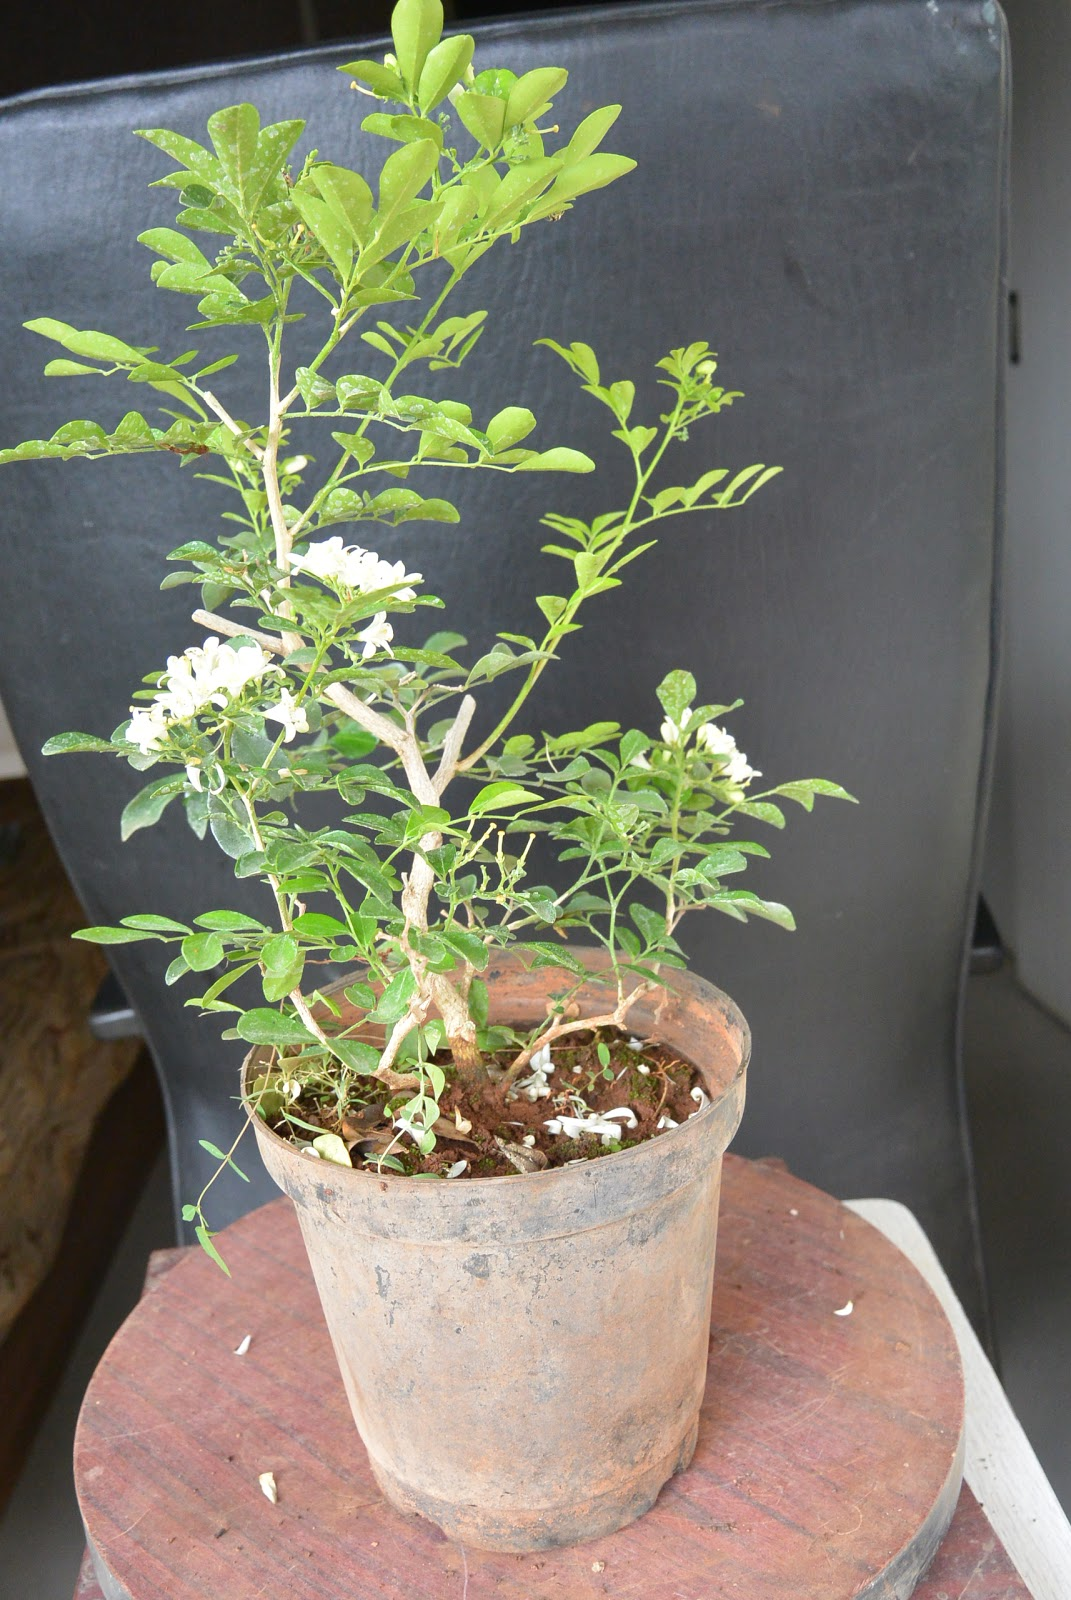 Kapilaascreations Shaping Of Nursery Plant Murraya In To Bonsai Wiring Did New By Removing Old Wires The Branches Now Changed Style Formal Upright I Am Waiting See My Fill With White Bright